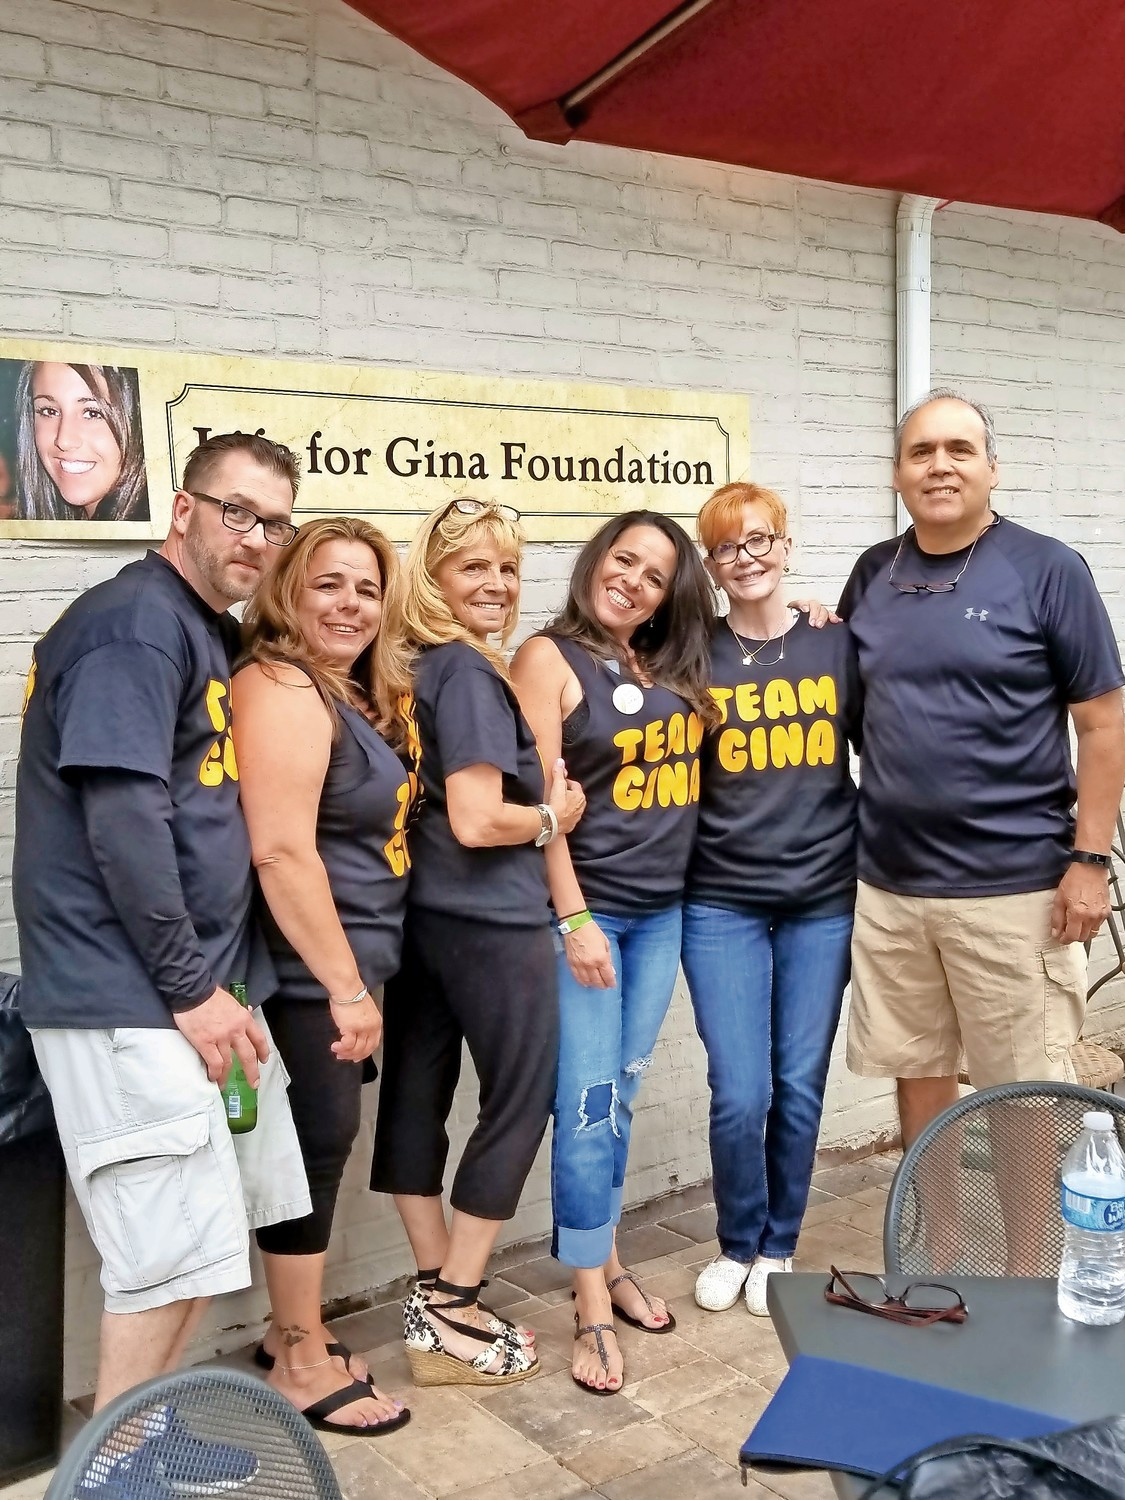 Gina Giallombardo's brother-in-law Eric Davidson, left; sister Janice Davidson; her mother, Marie Giallombardo; sister Jennifer Bartholomew; and boyfriend's mother and father, Mimi and Art Calvo attended the fundraiser.